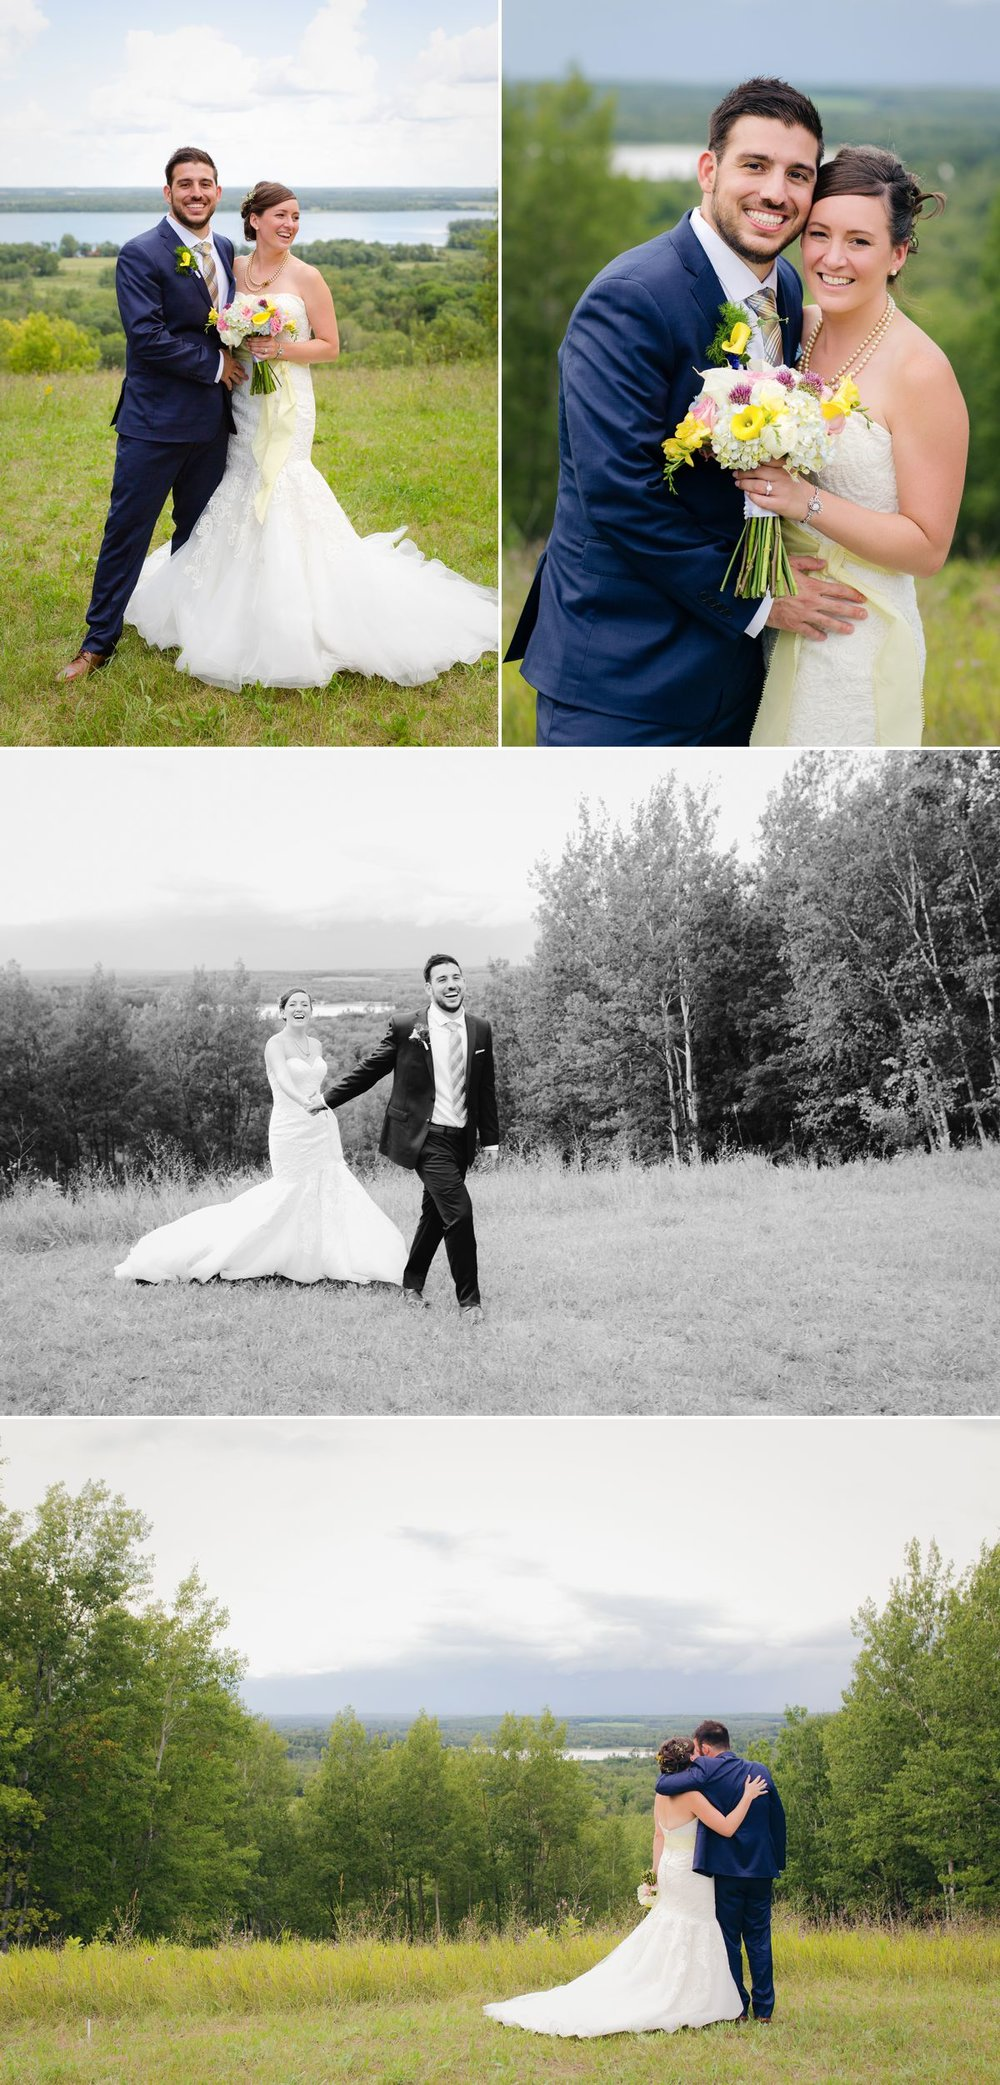 Minnesota_Wedding 7.jpg